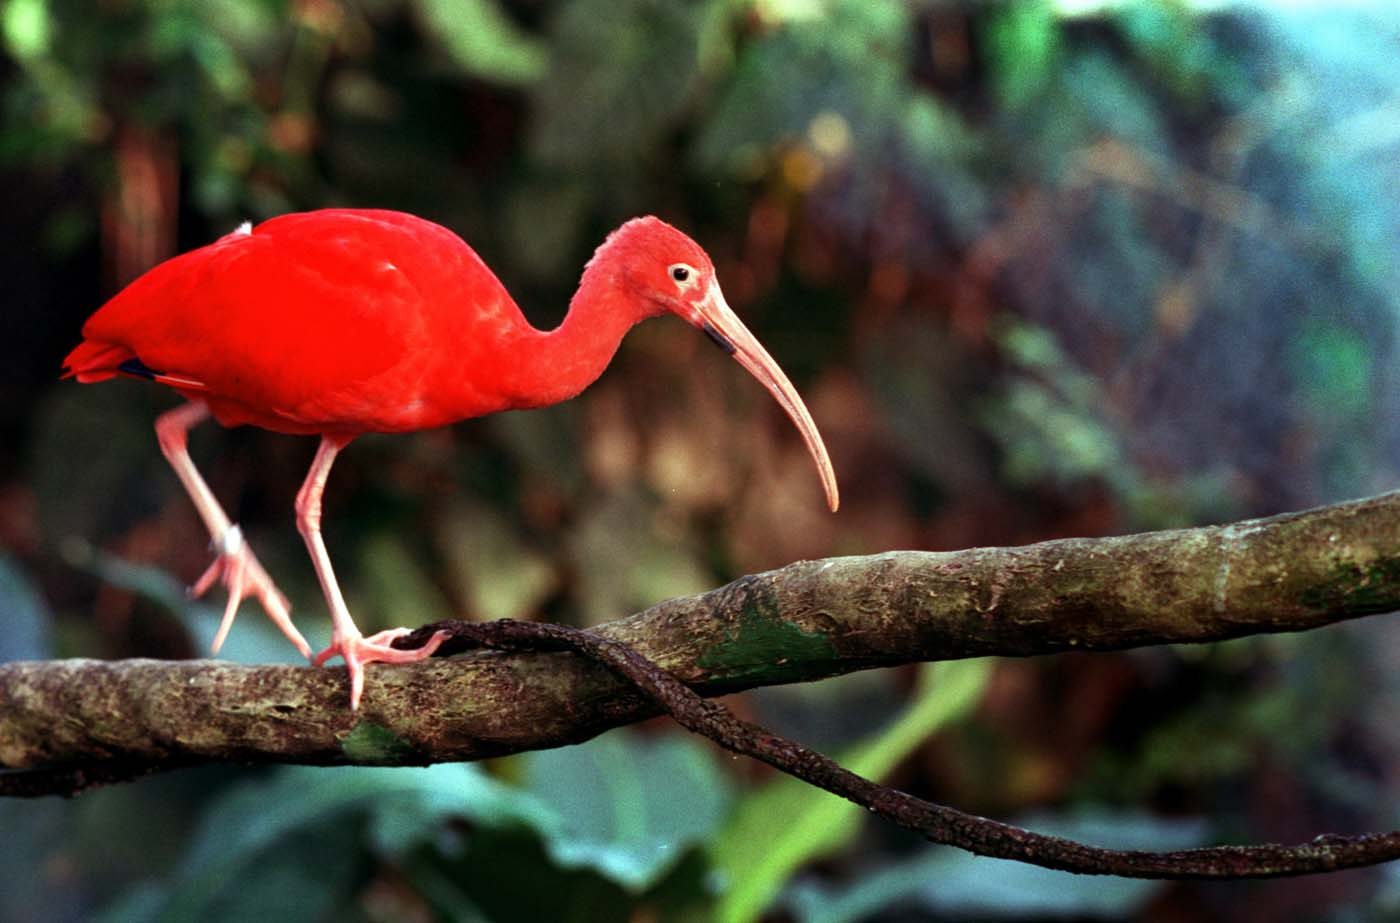 A Scarlet Ibis, which came from Venezuela, at the rain forest at the National Aquarium. (Amy Davis/Baltimore Sun)